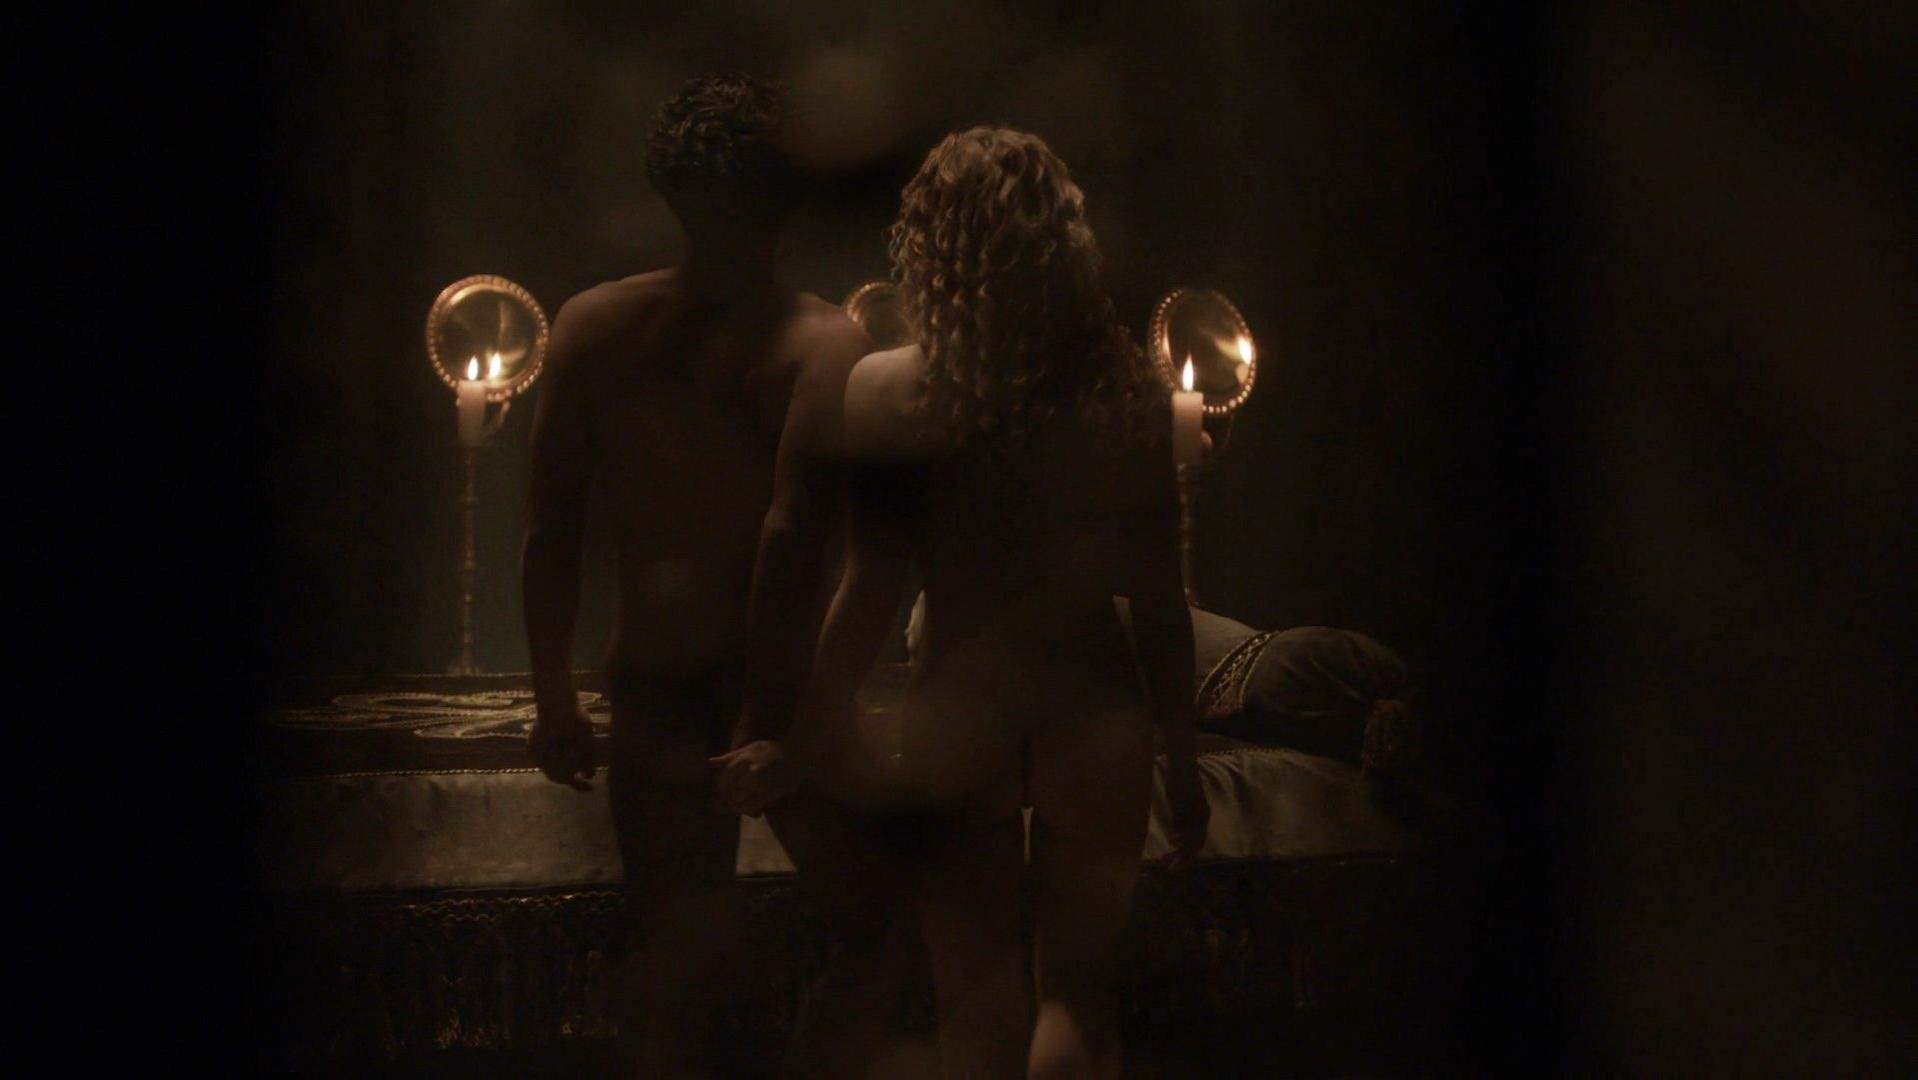 Holliday Grainger nude - The Borgias s03e04 (2013)